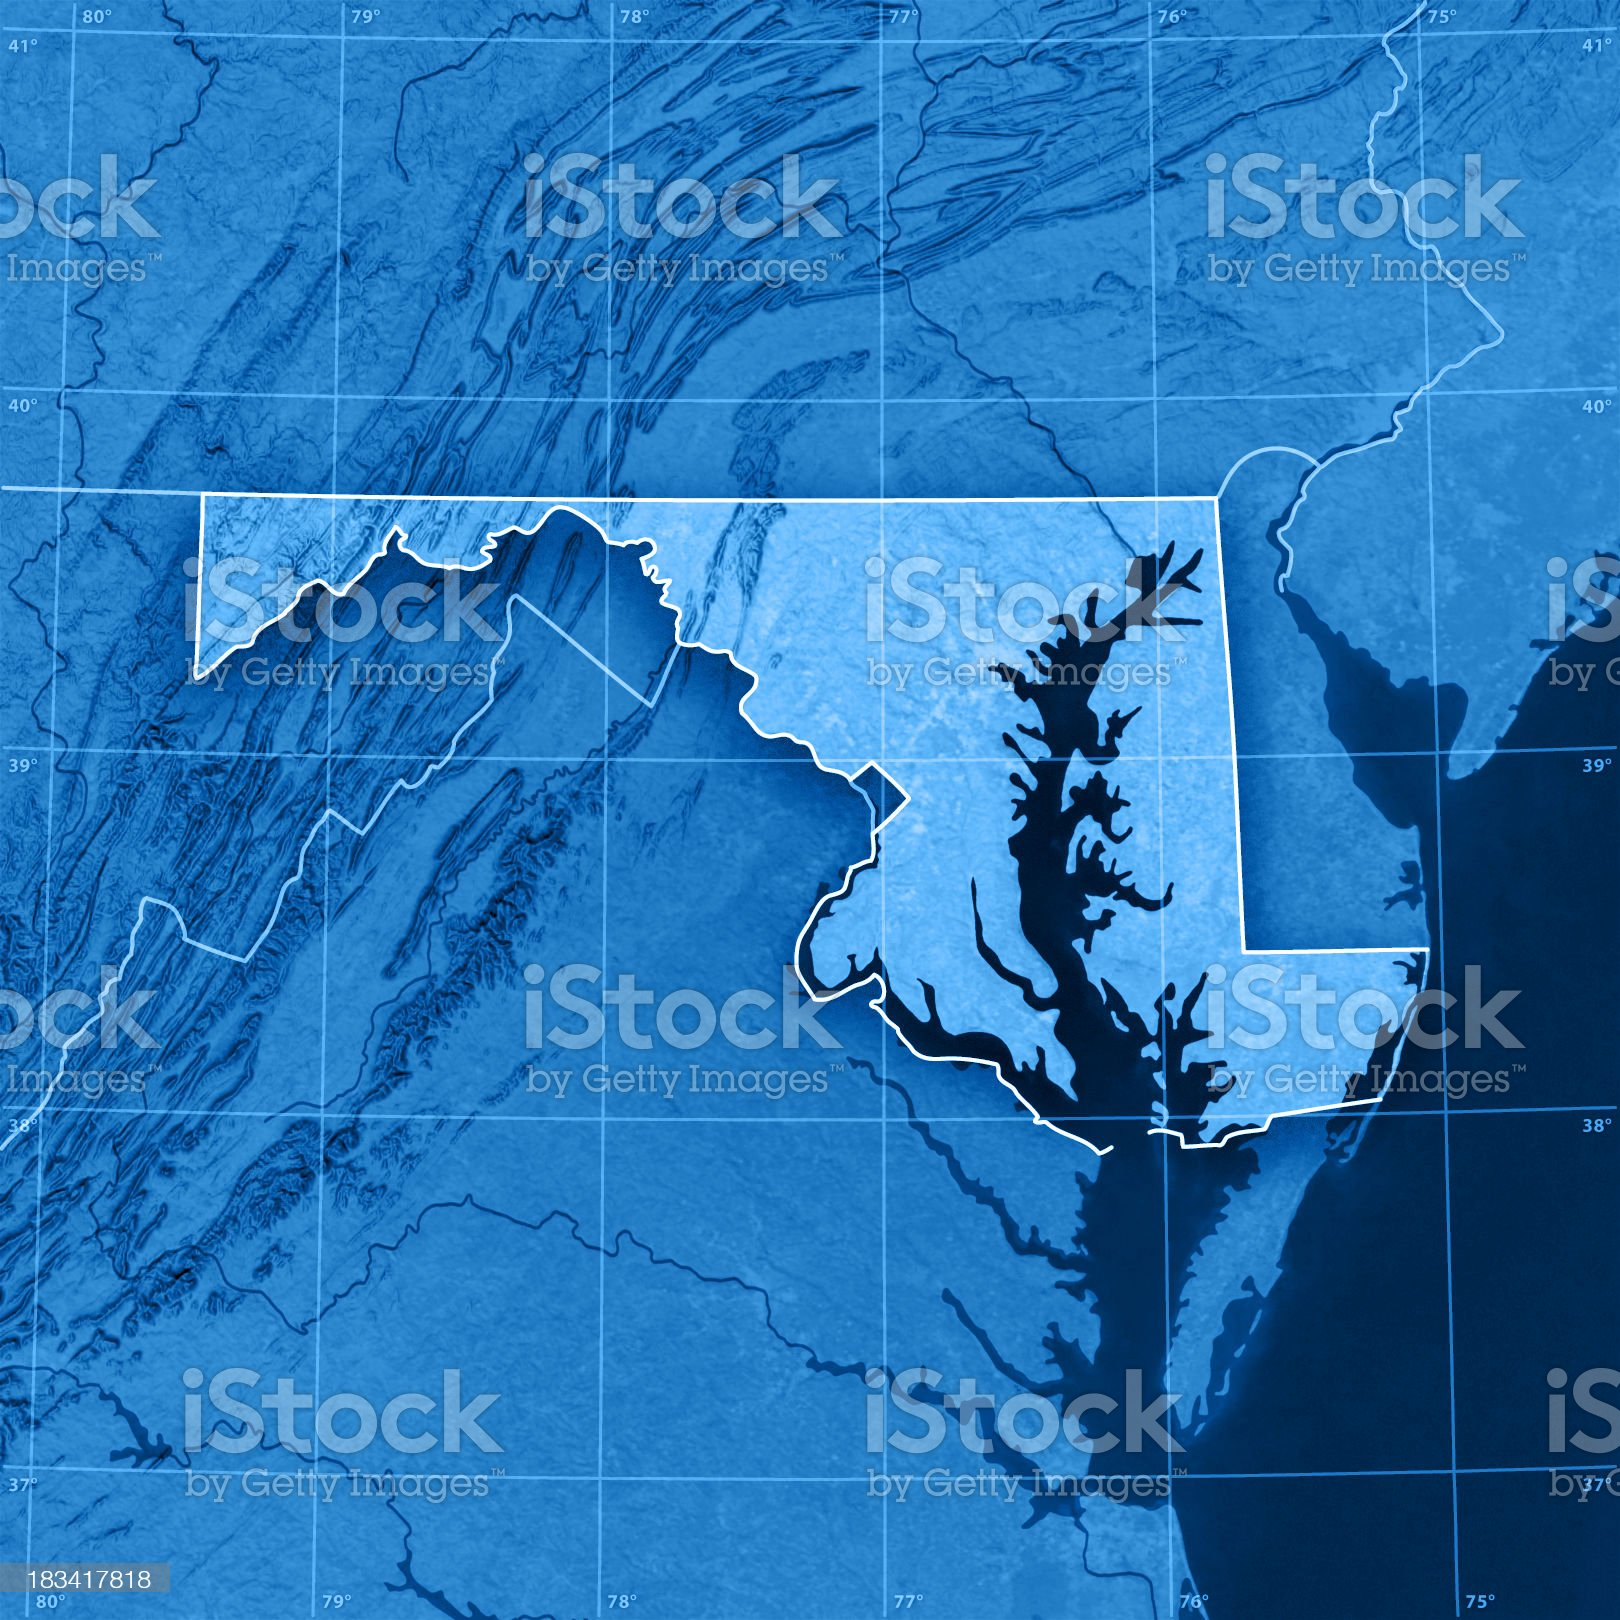 Maryland Topographic Map royalty-free stock photo